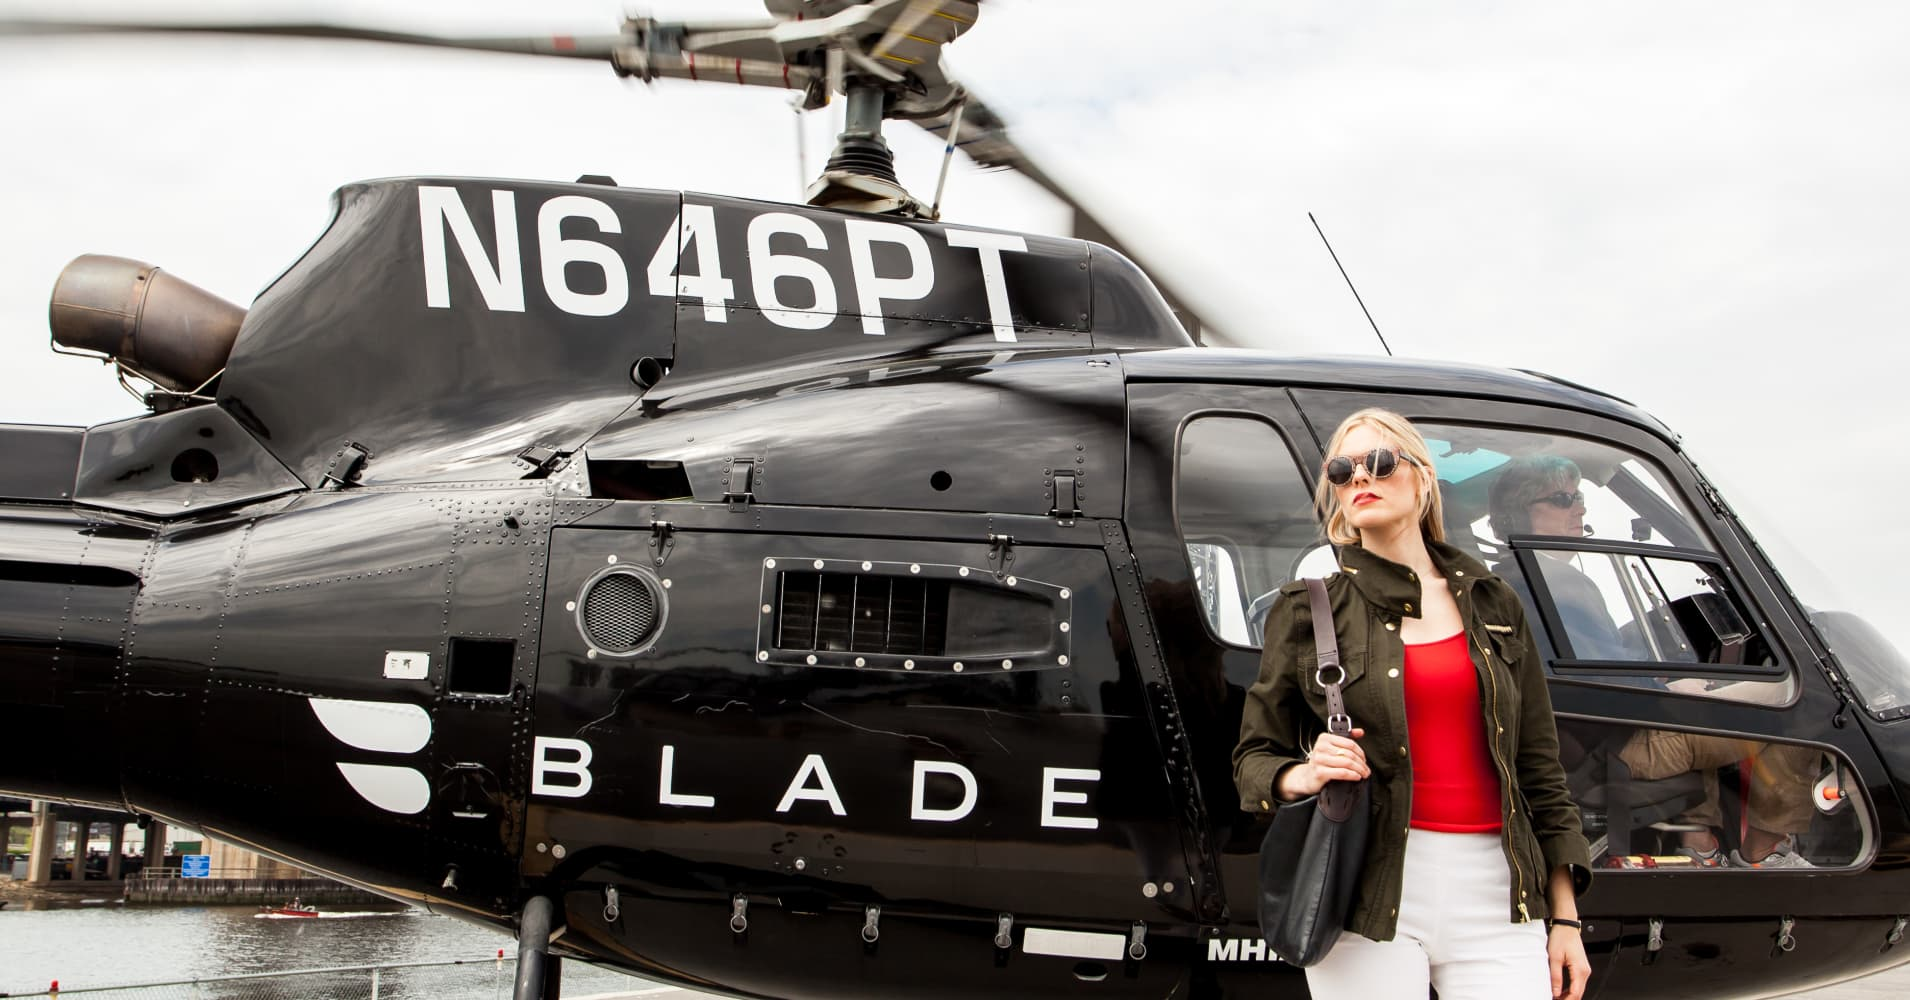 The race between Lyft, Uber Copter, Blade helicopter to JFK